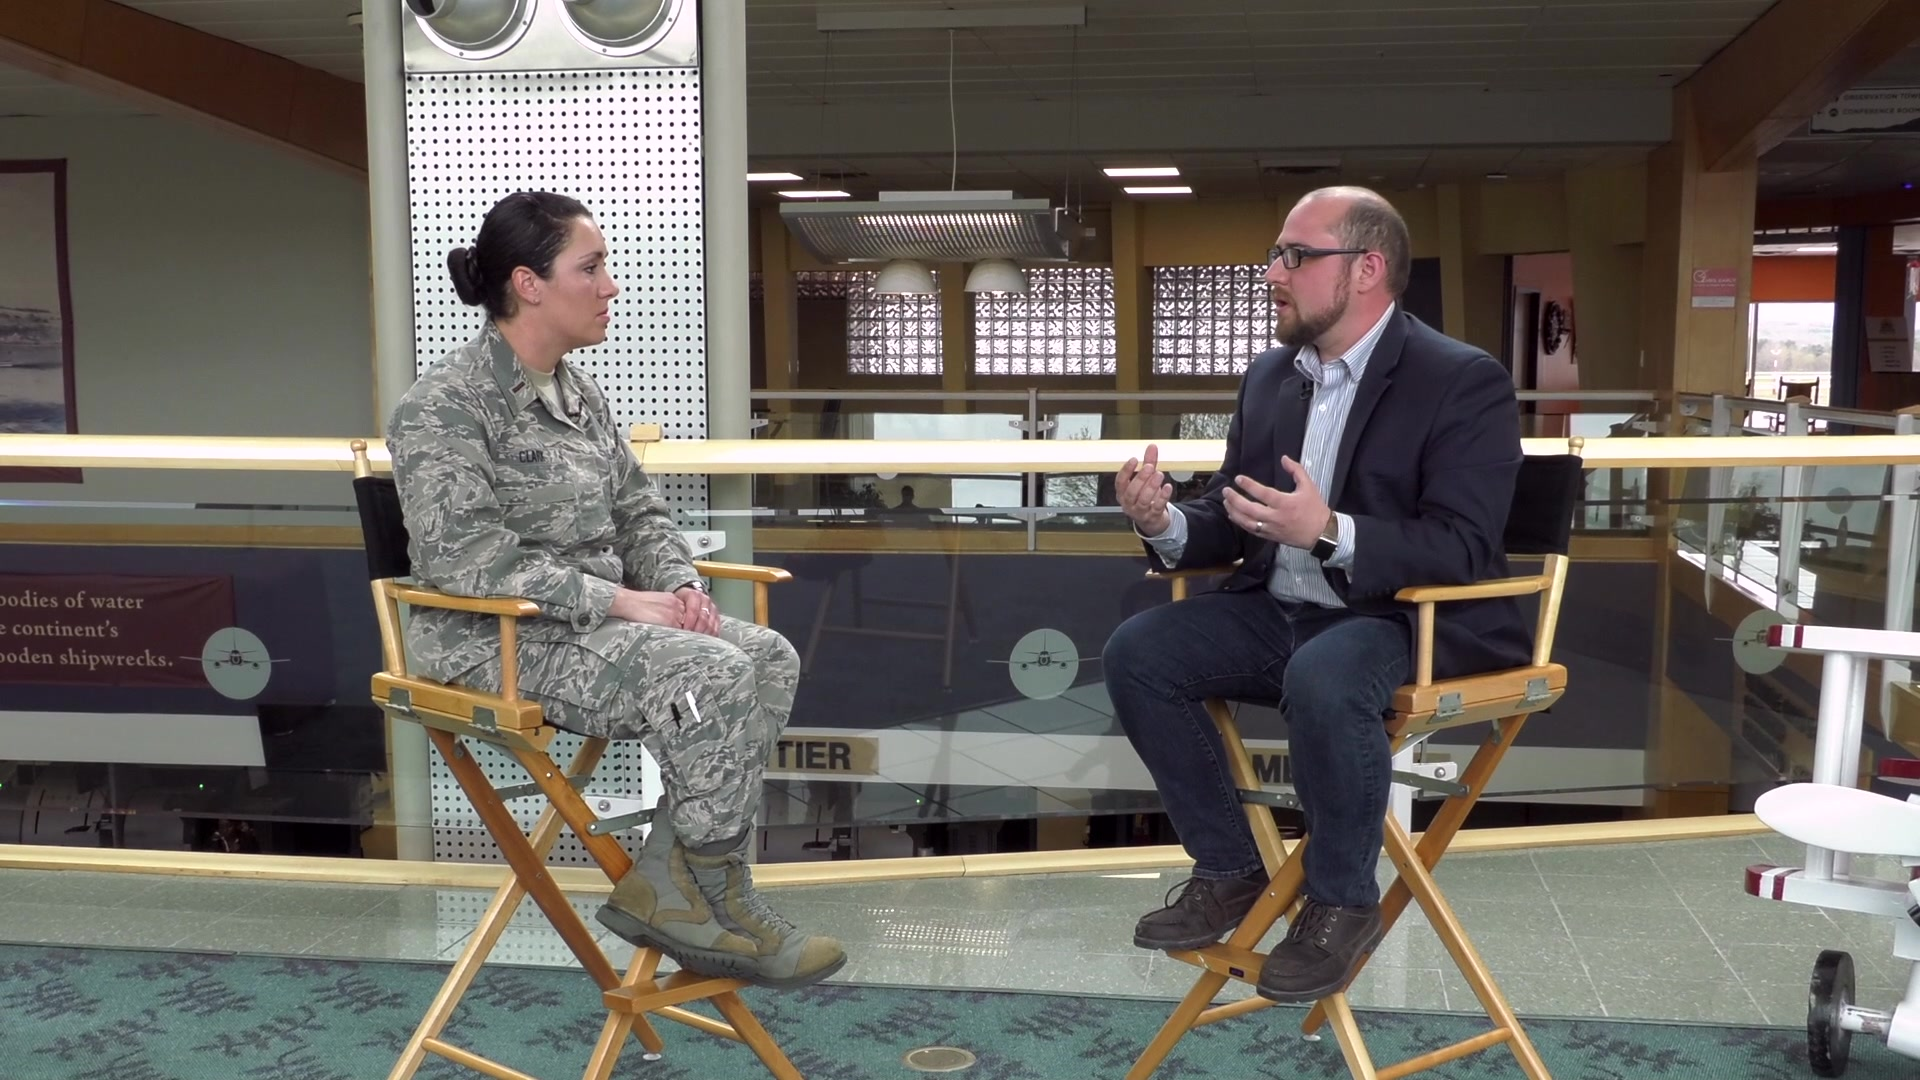 Today on Between 2 Frames we talk with Nic Longo, the Deputy Director of Aviation at BTV, on the relationship with the Vermont Air National Guard as users of the Burlington International Airport.